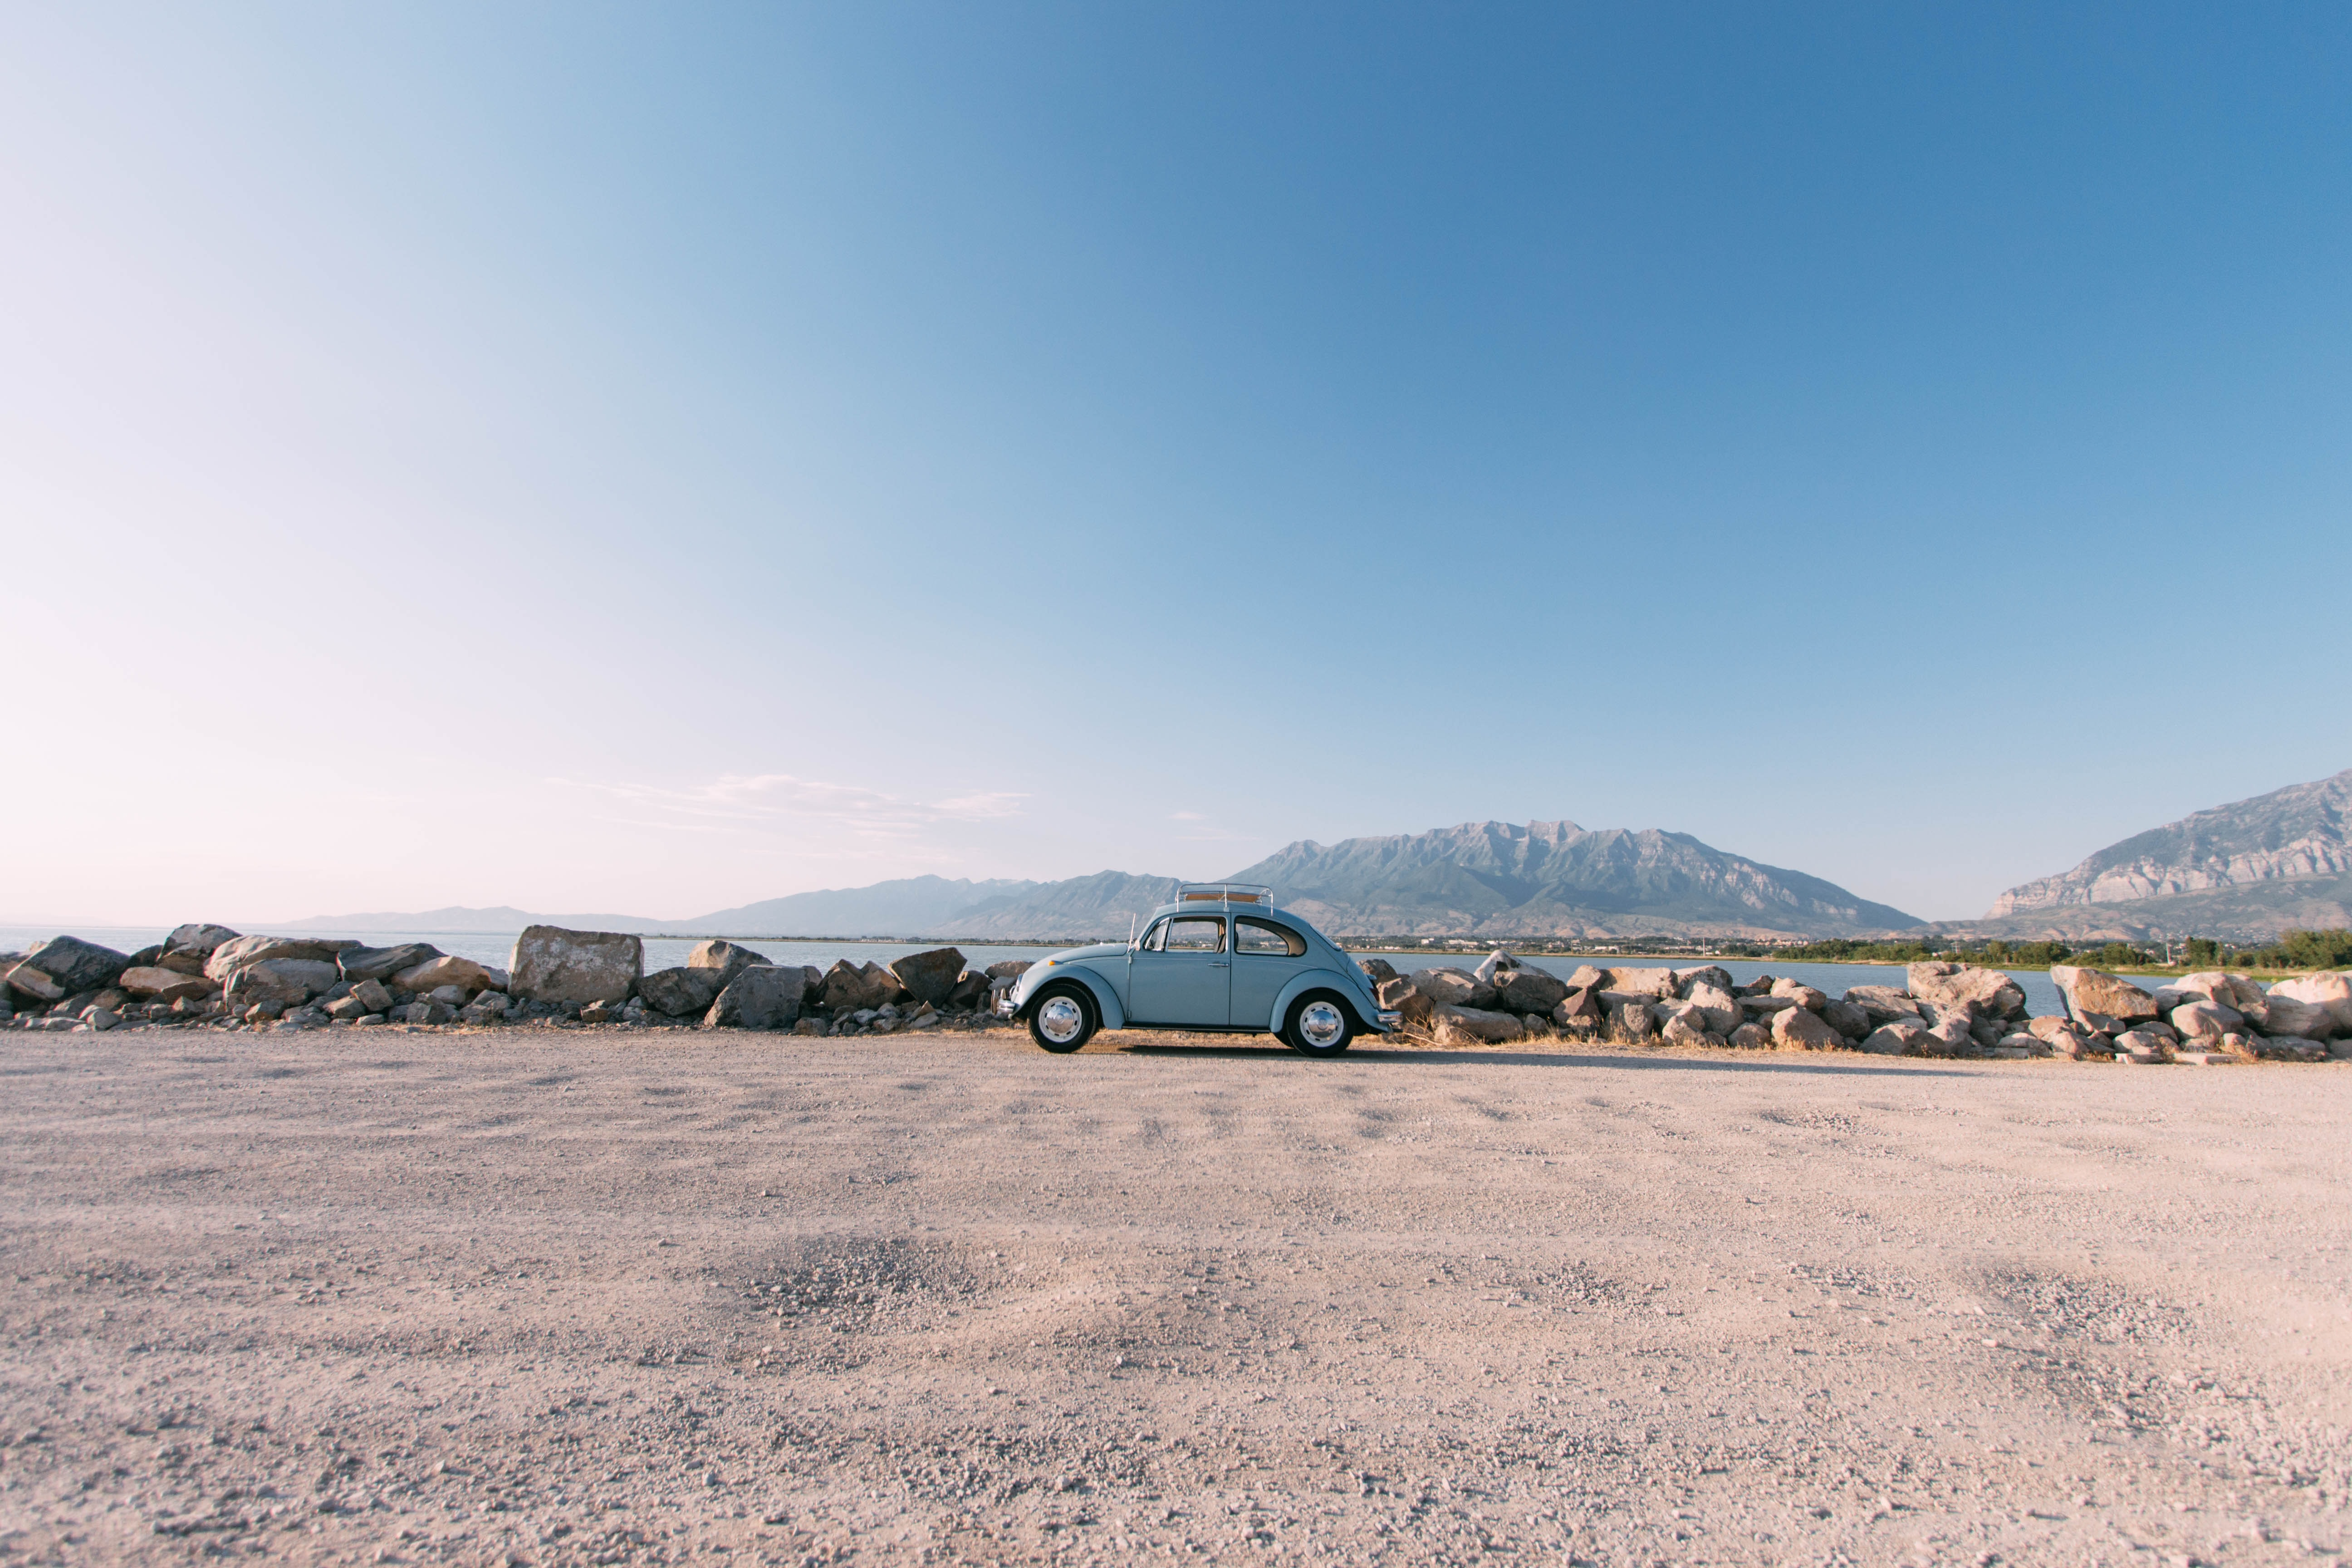 Vintage, blue Volkswagen Beetle parked on road in front of lake with mountains in the distance